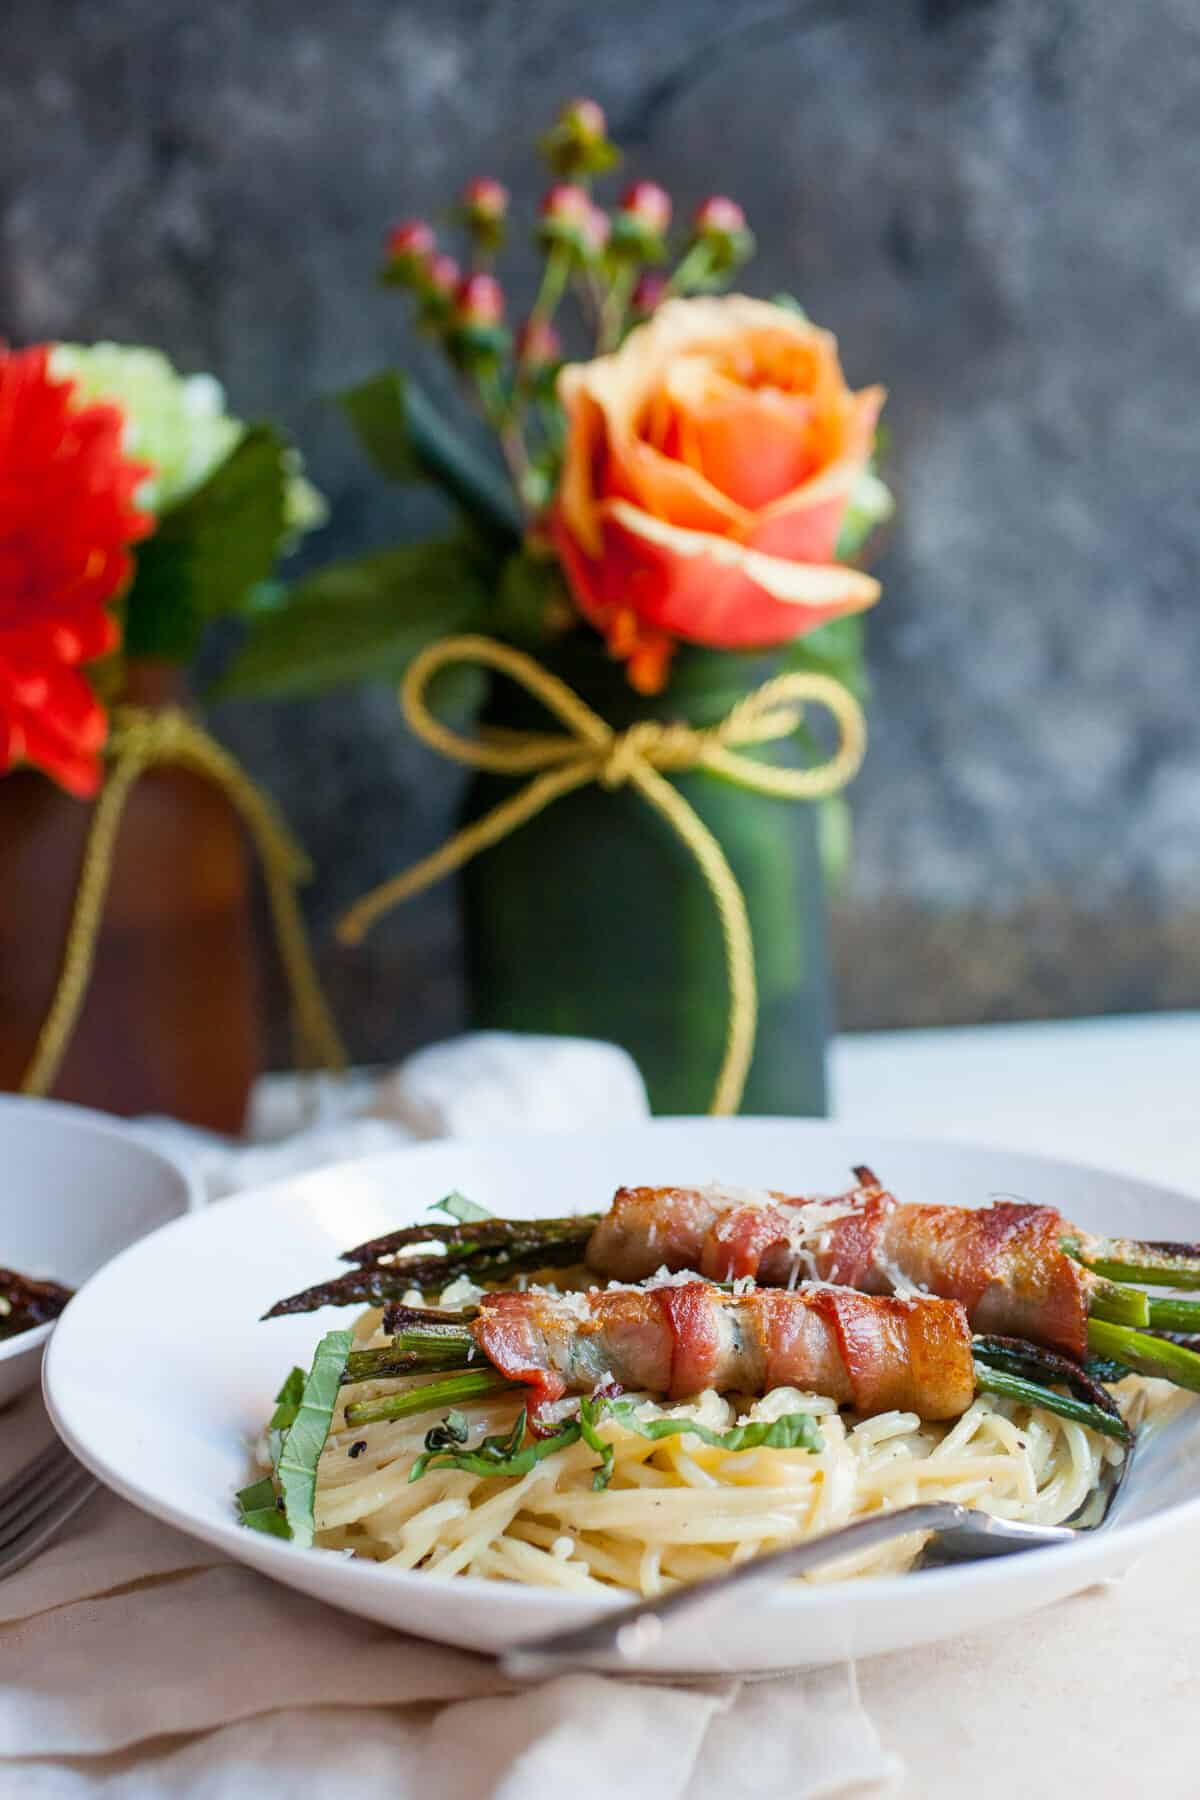 Asparagus Bundle Pasta: A simple cacio e pepe spaghetti topped with roasted bacon asparagus bundles. Yum! | macheesmo.com